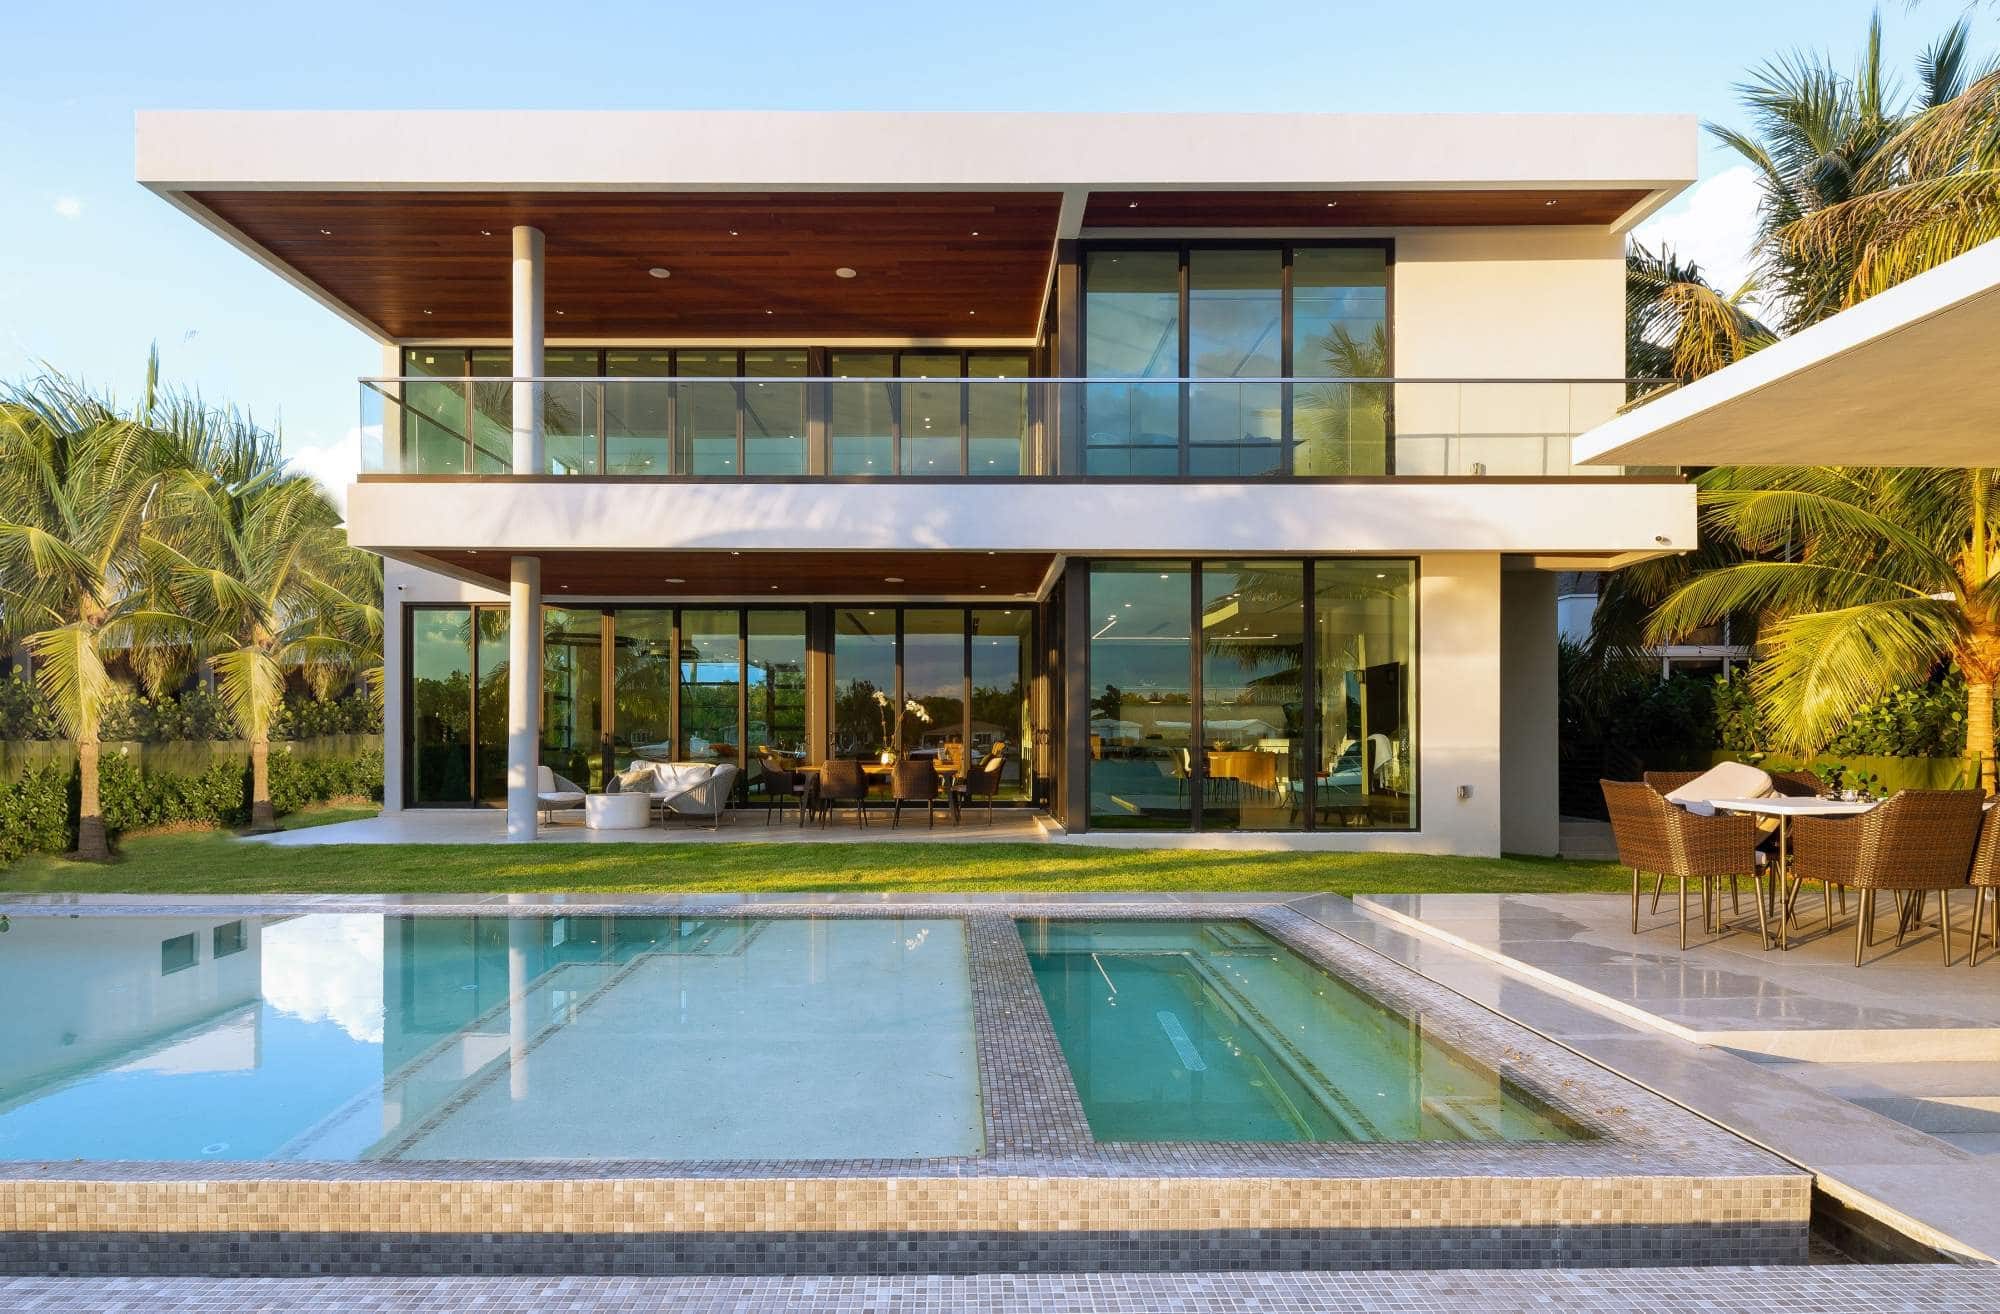 Architecture project in Biscayne Point, Miami Beach